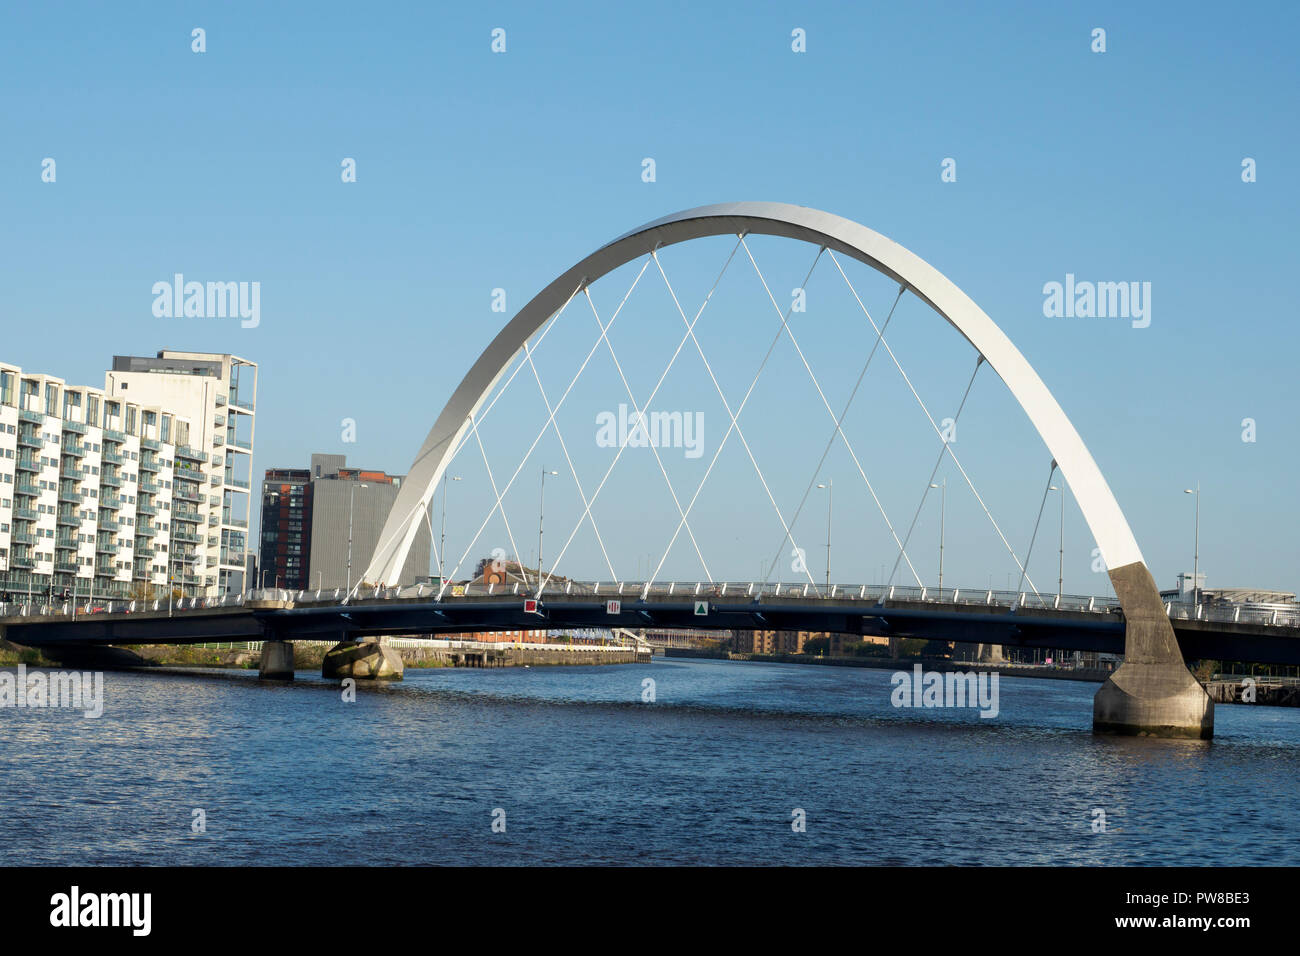 The Clyde Arc (known locally as the Squinty Bridge), is a road bridge spanning the River Clyde in Glasgow, Scotland Stock Photo